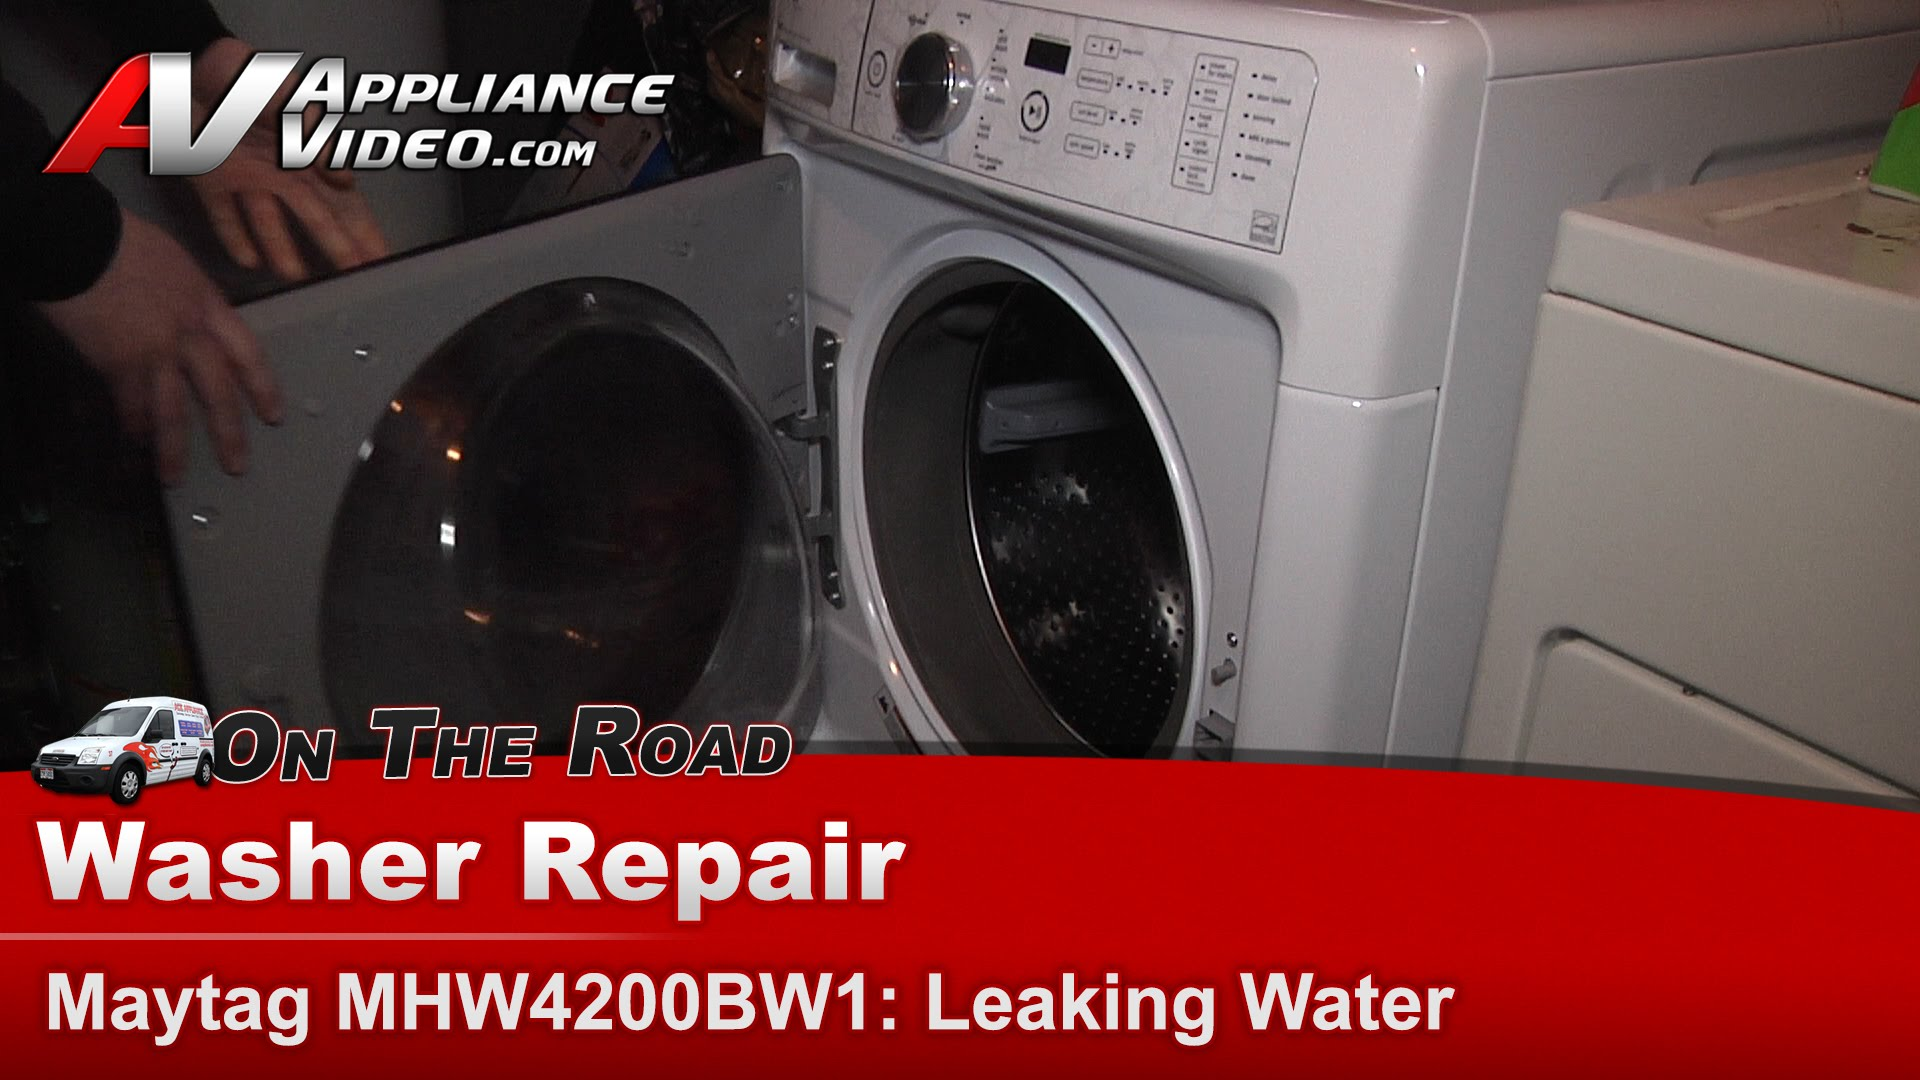 Maytag MHW4200BW1 Washer  Leaking water  Appliance Video